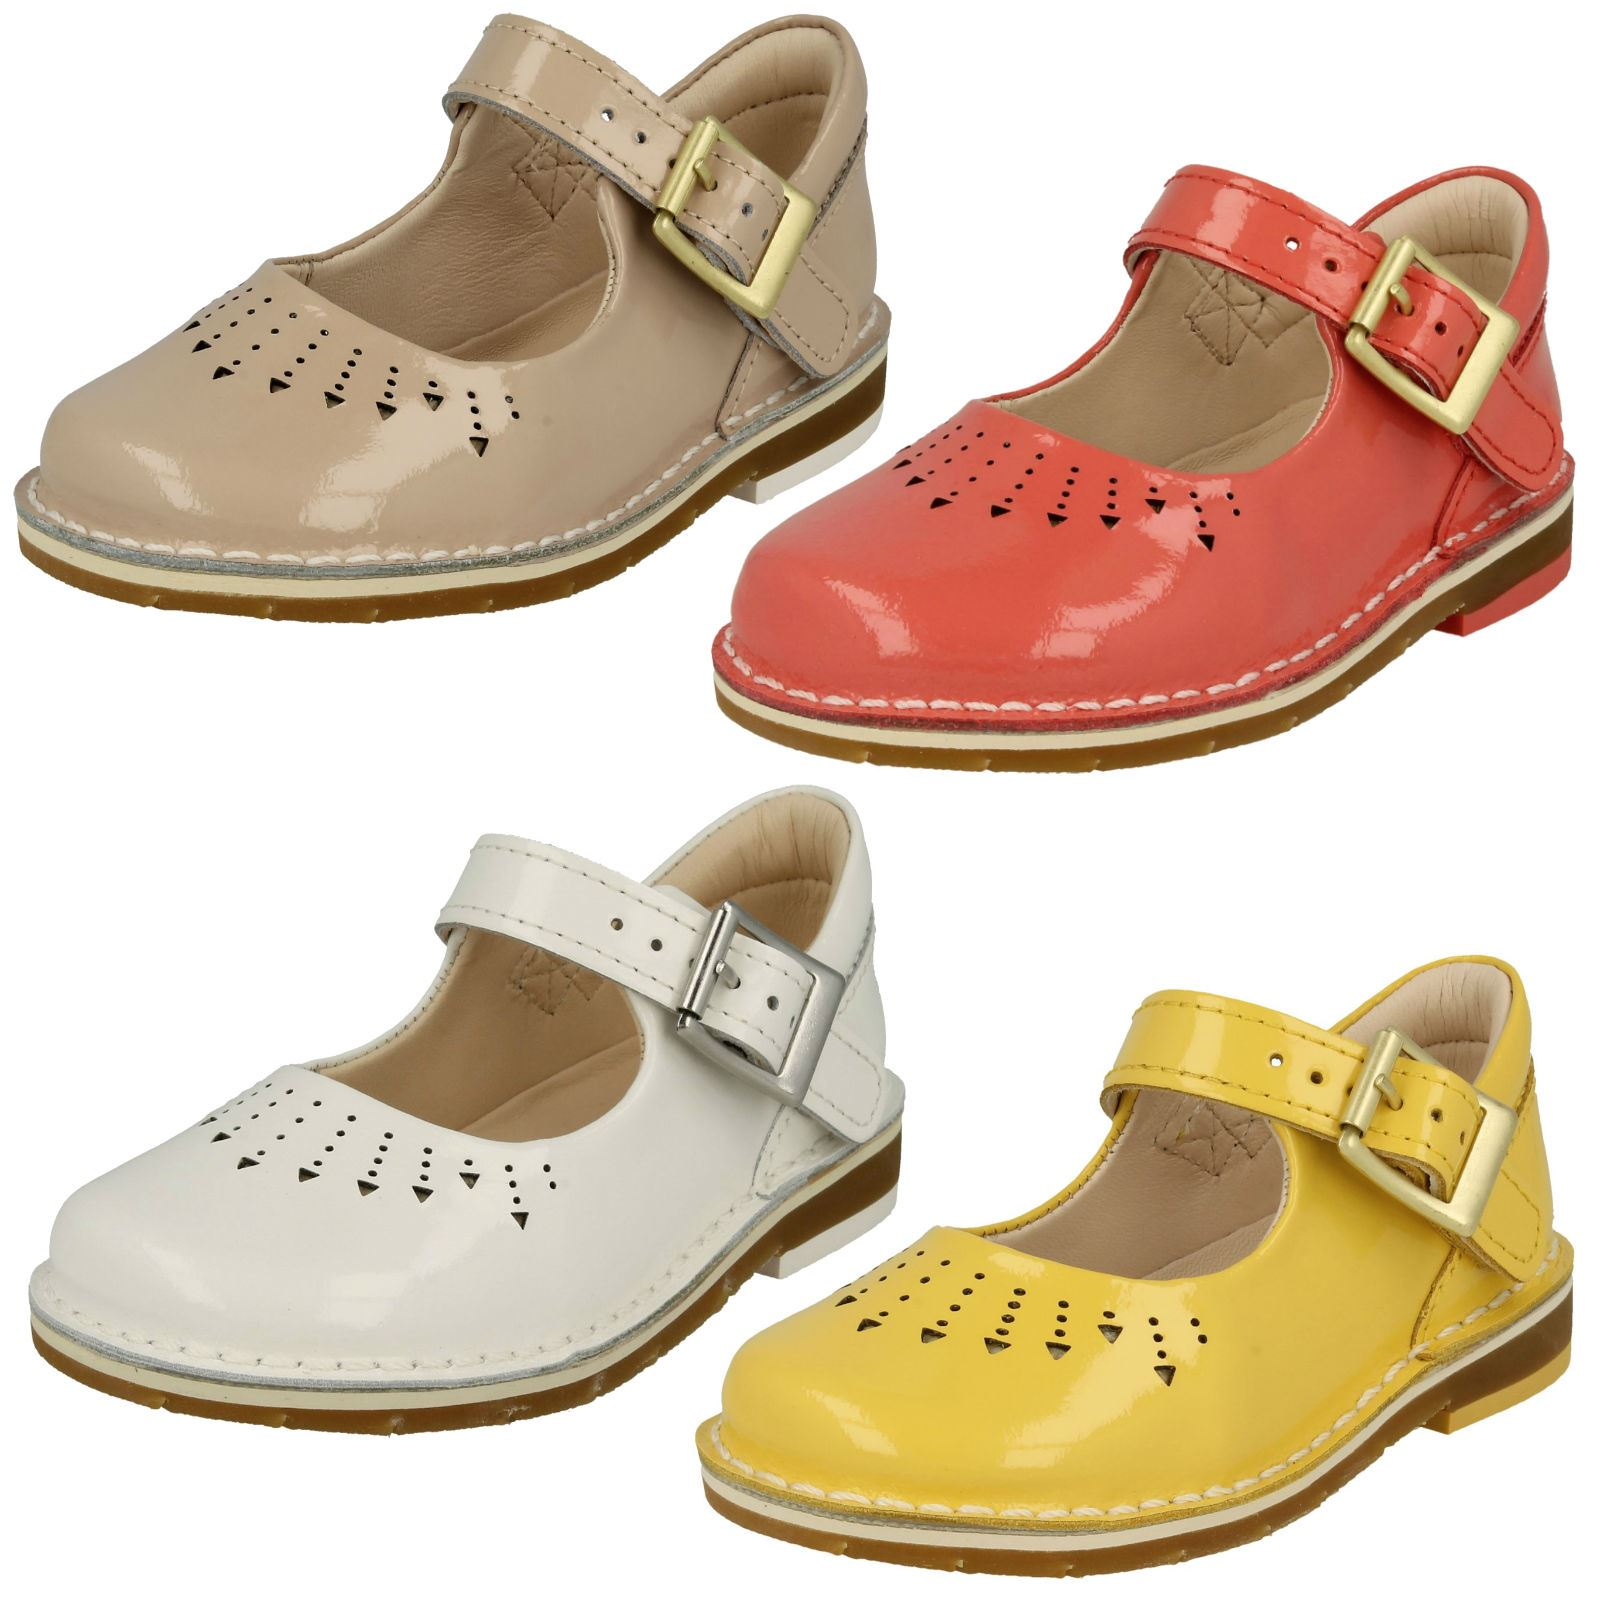 58b45539315b Clarks Infant Toddler Girls Buckle Mary Jane Patent Leather First Shoe Yarn  Jump